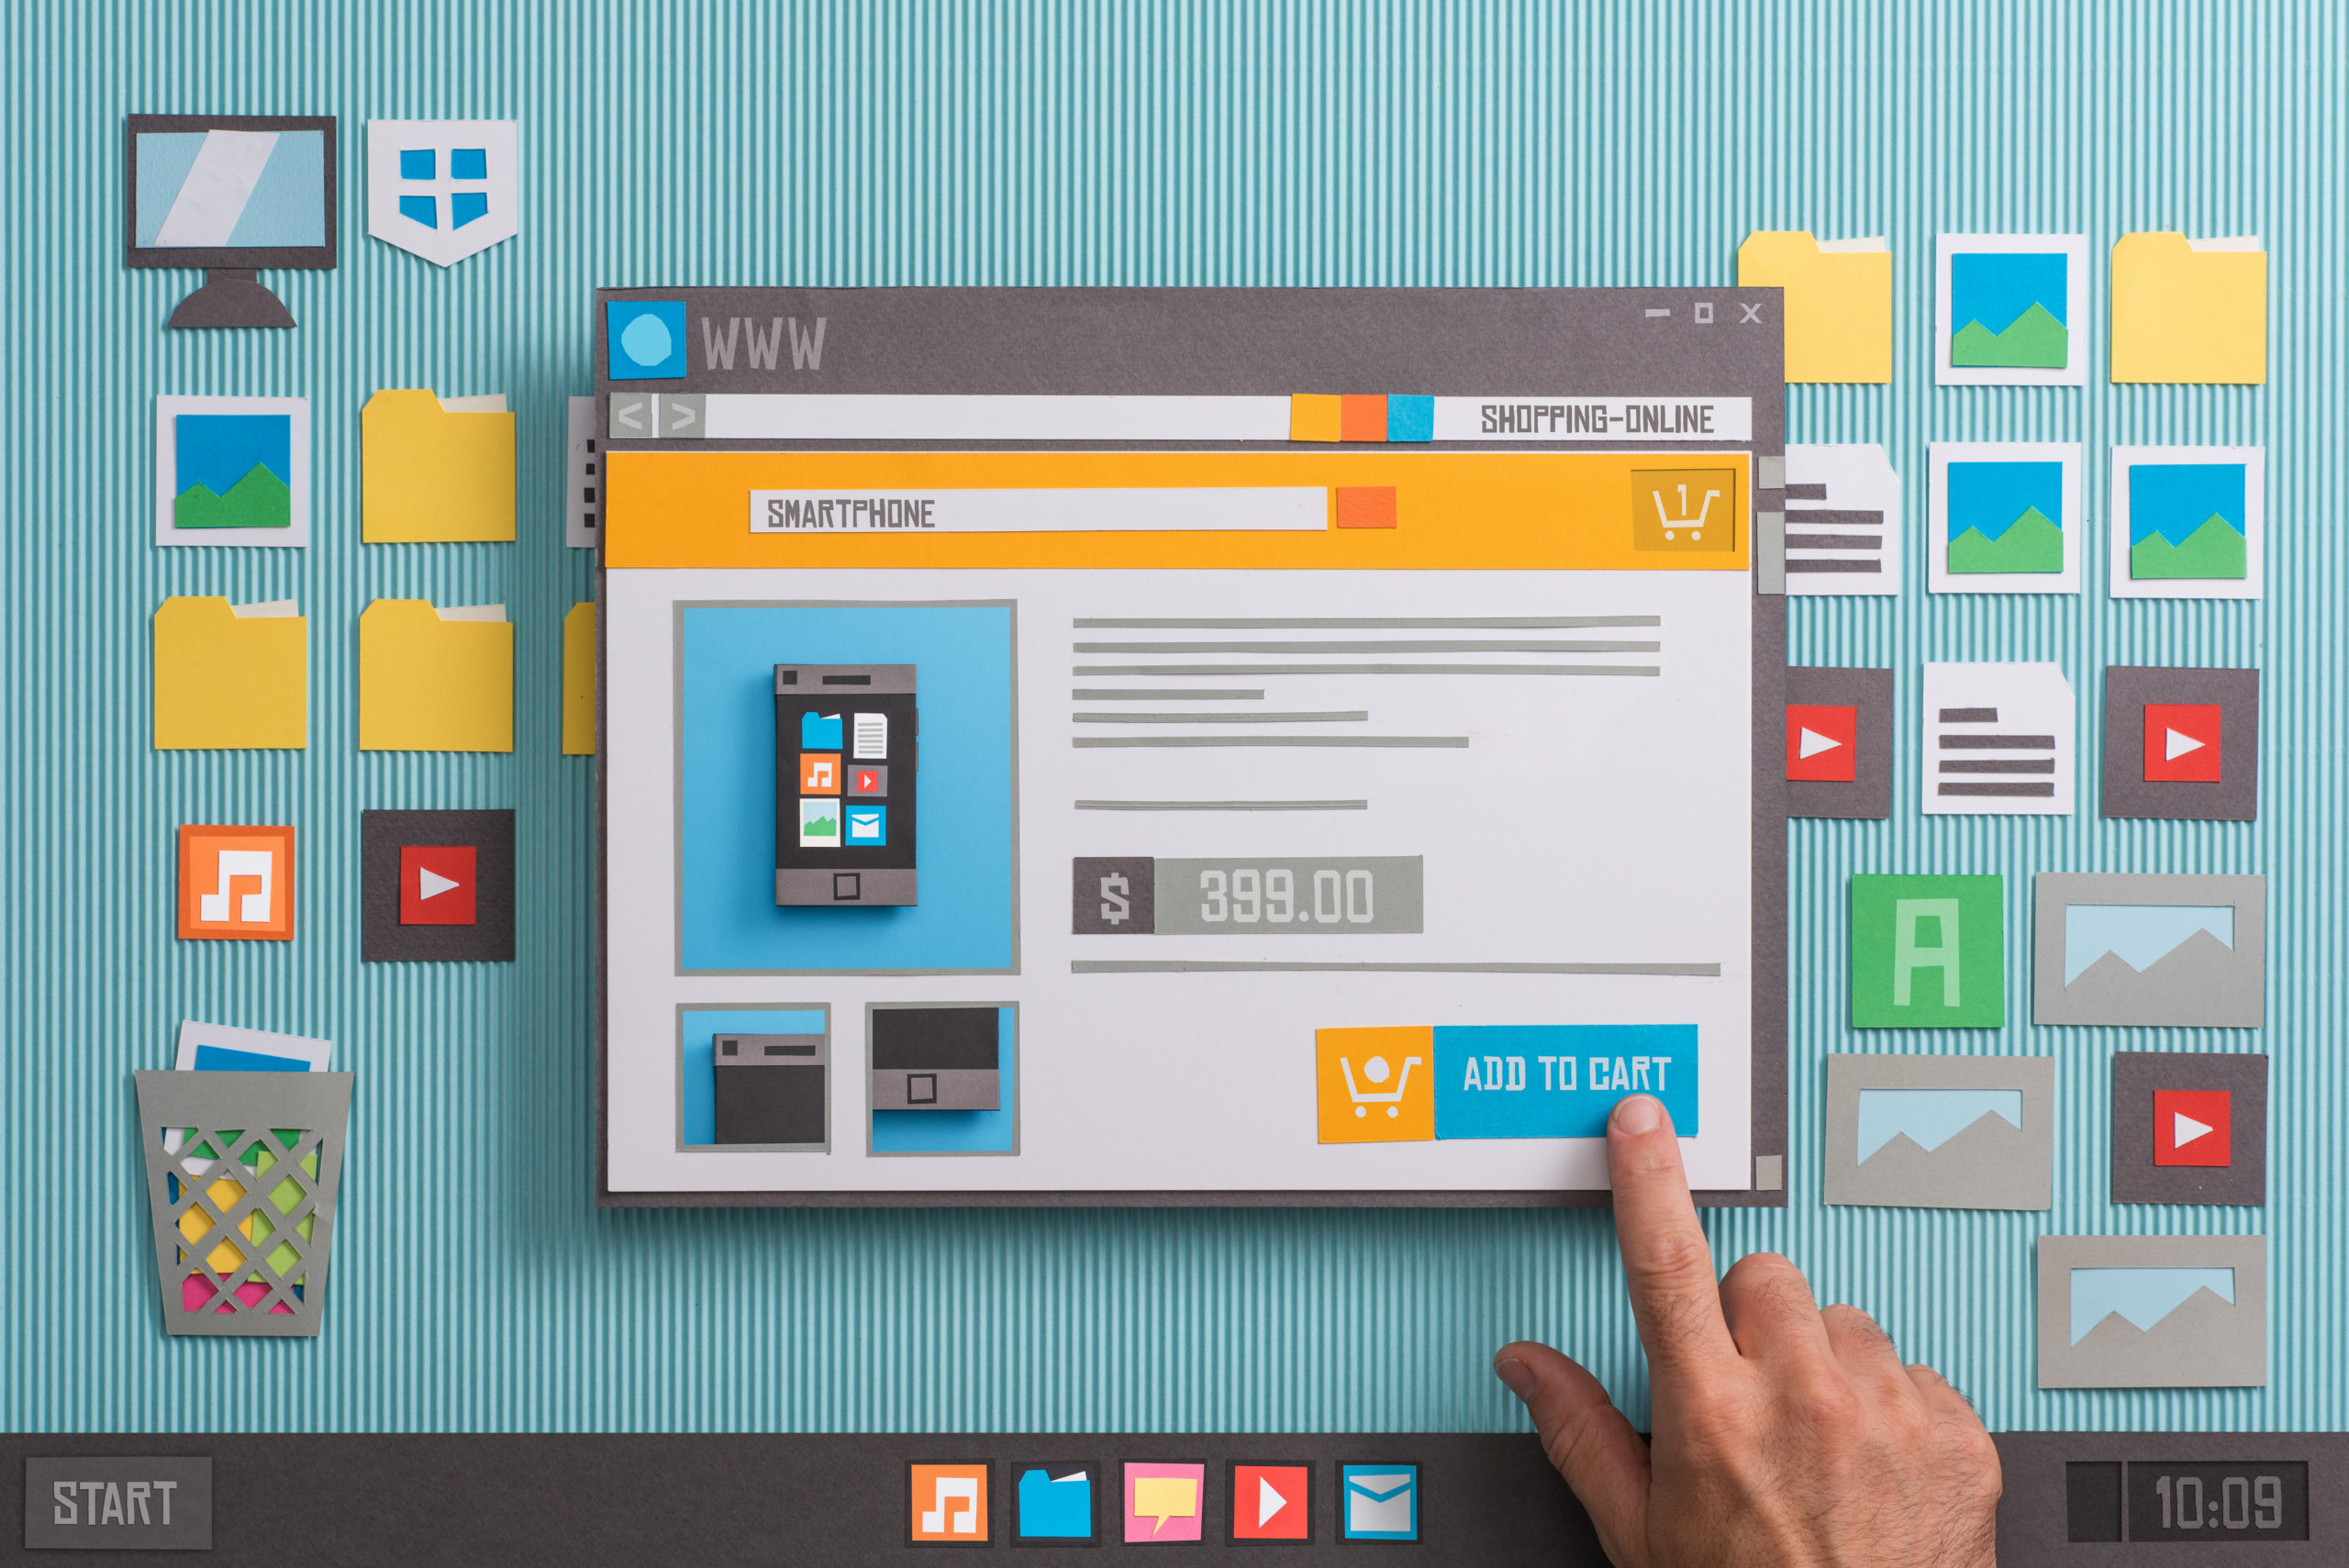 Persons hand pointing to Add to Cart button on large paper cutout of website design layout.